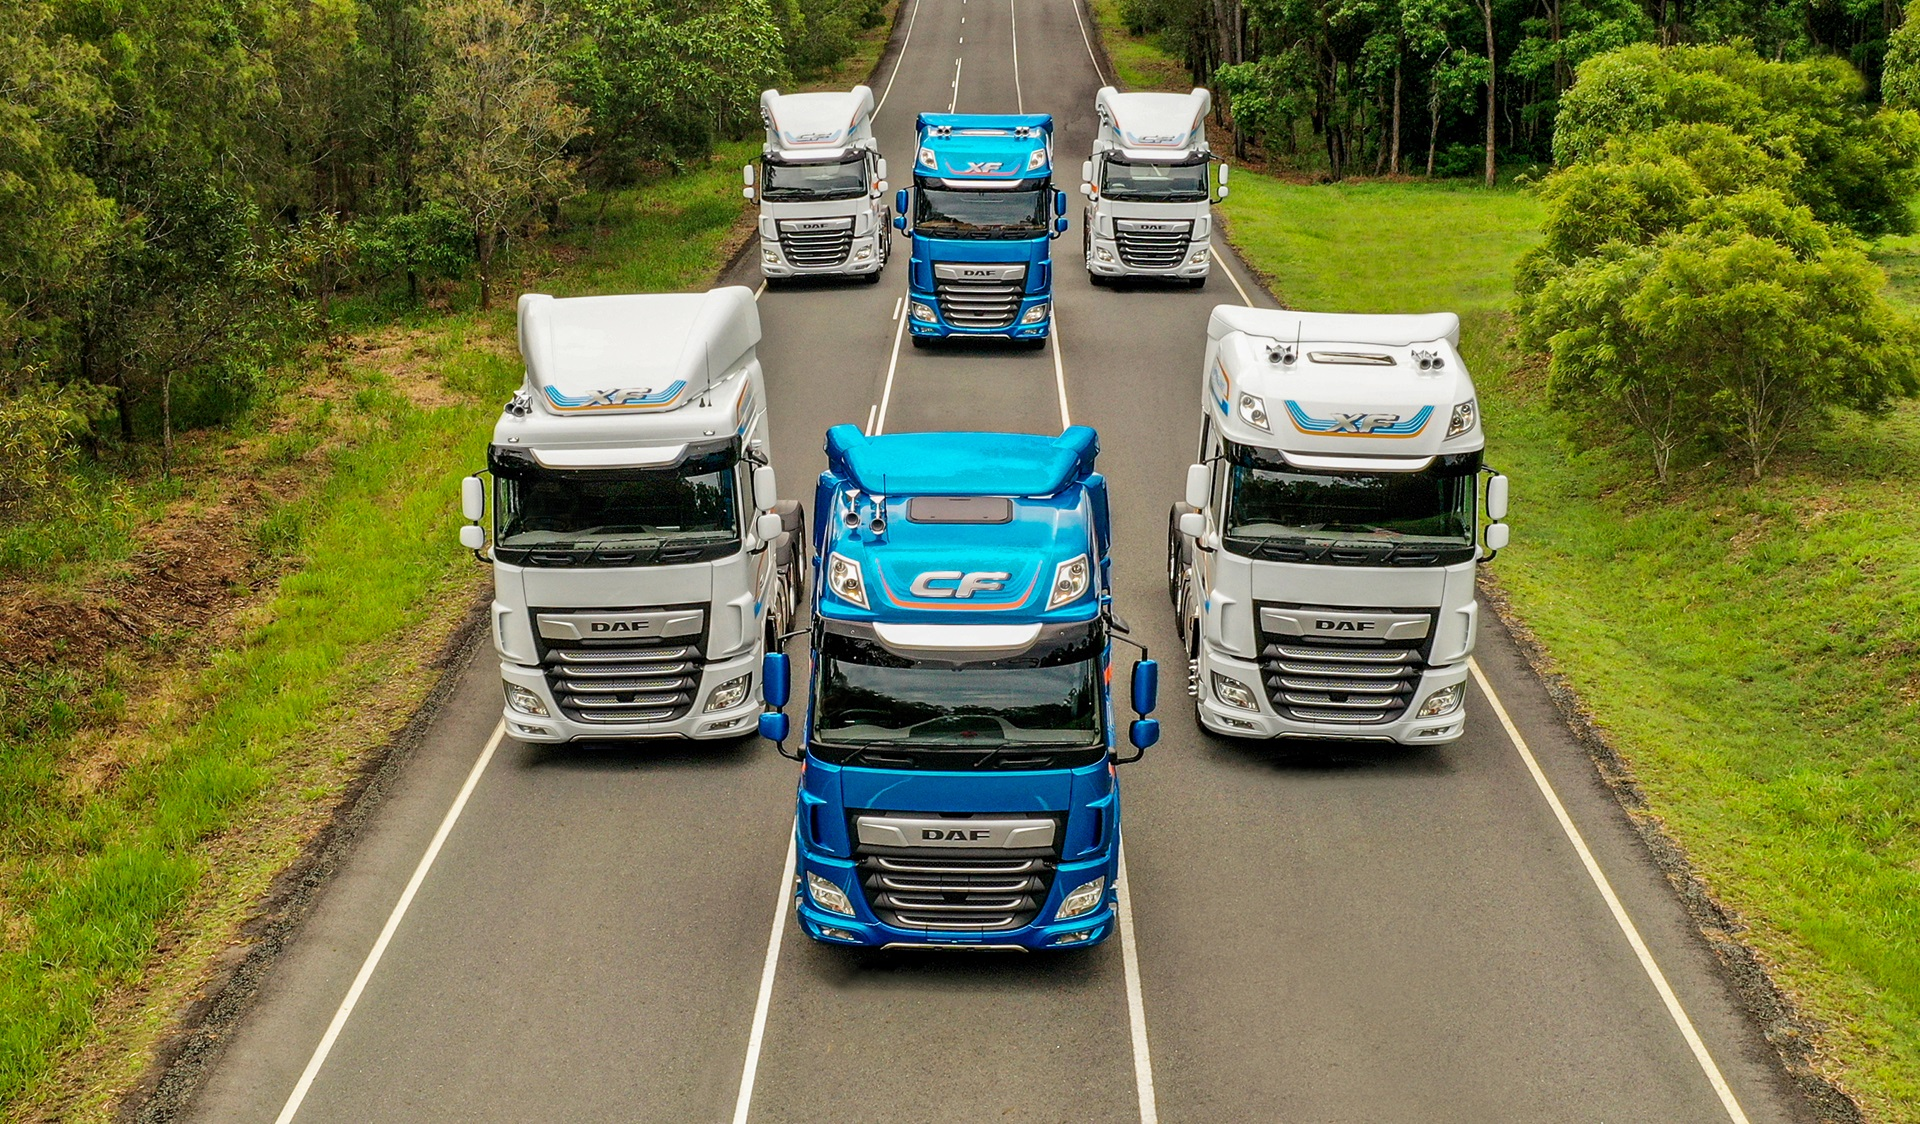 DAF Trucks win Design Award